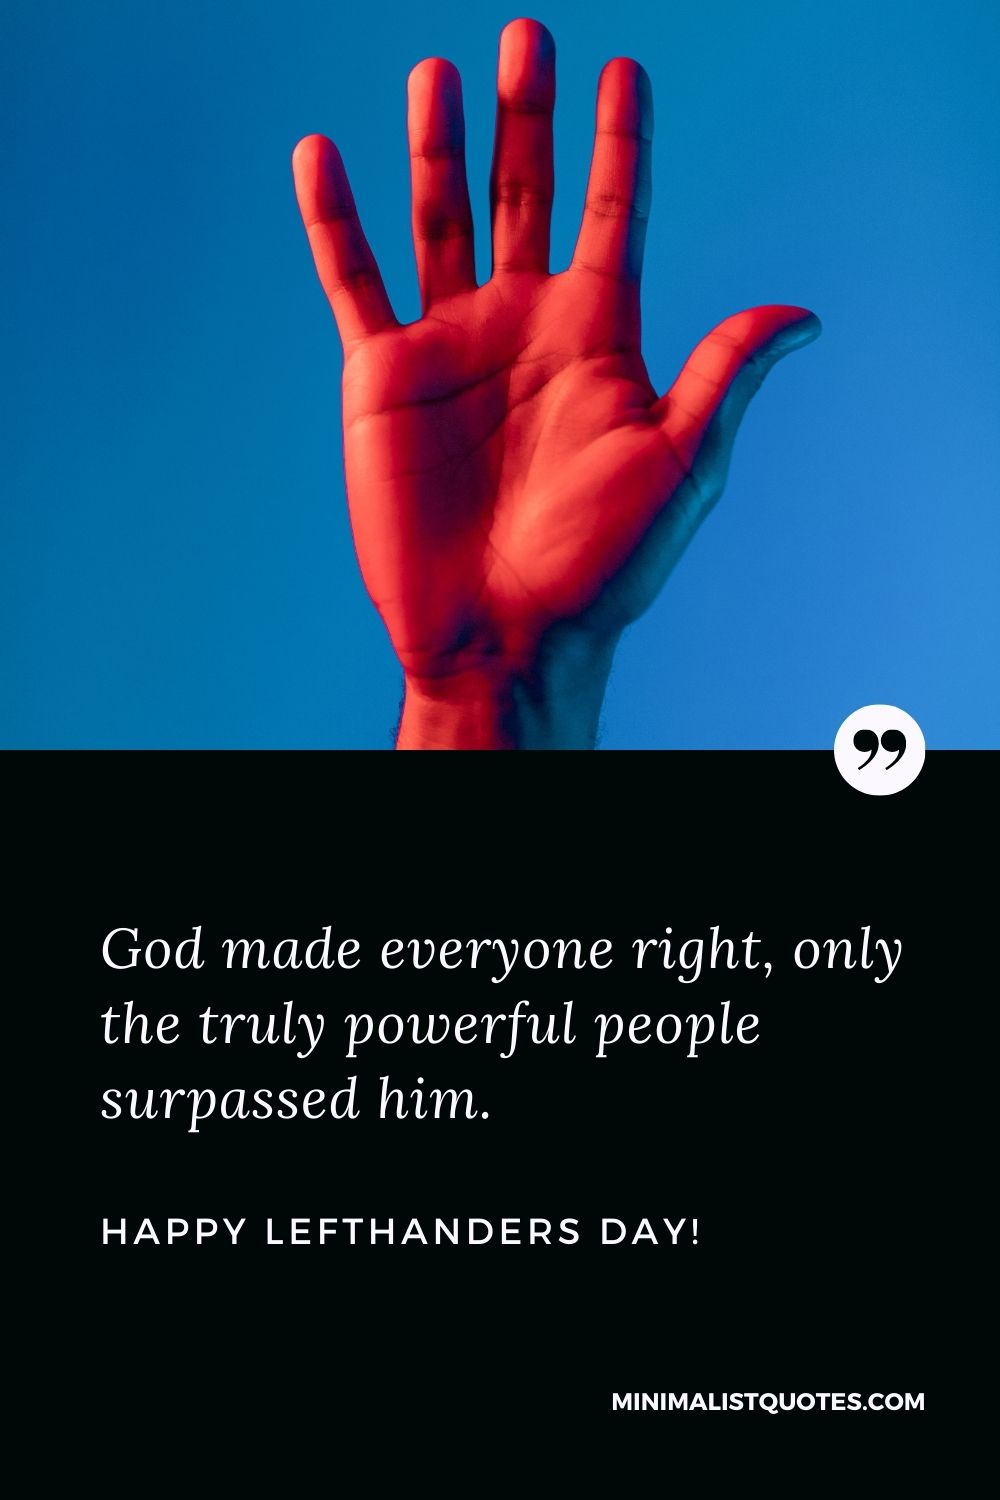 Happy left handers day quotes: God made everyone right, only the truly powerful people surpassed him. Happy Left Handers Day!